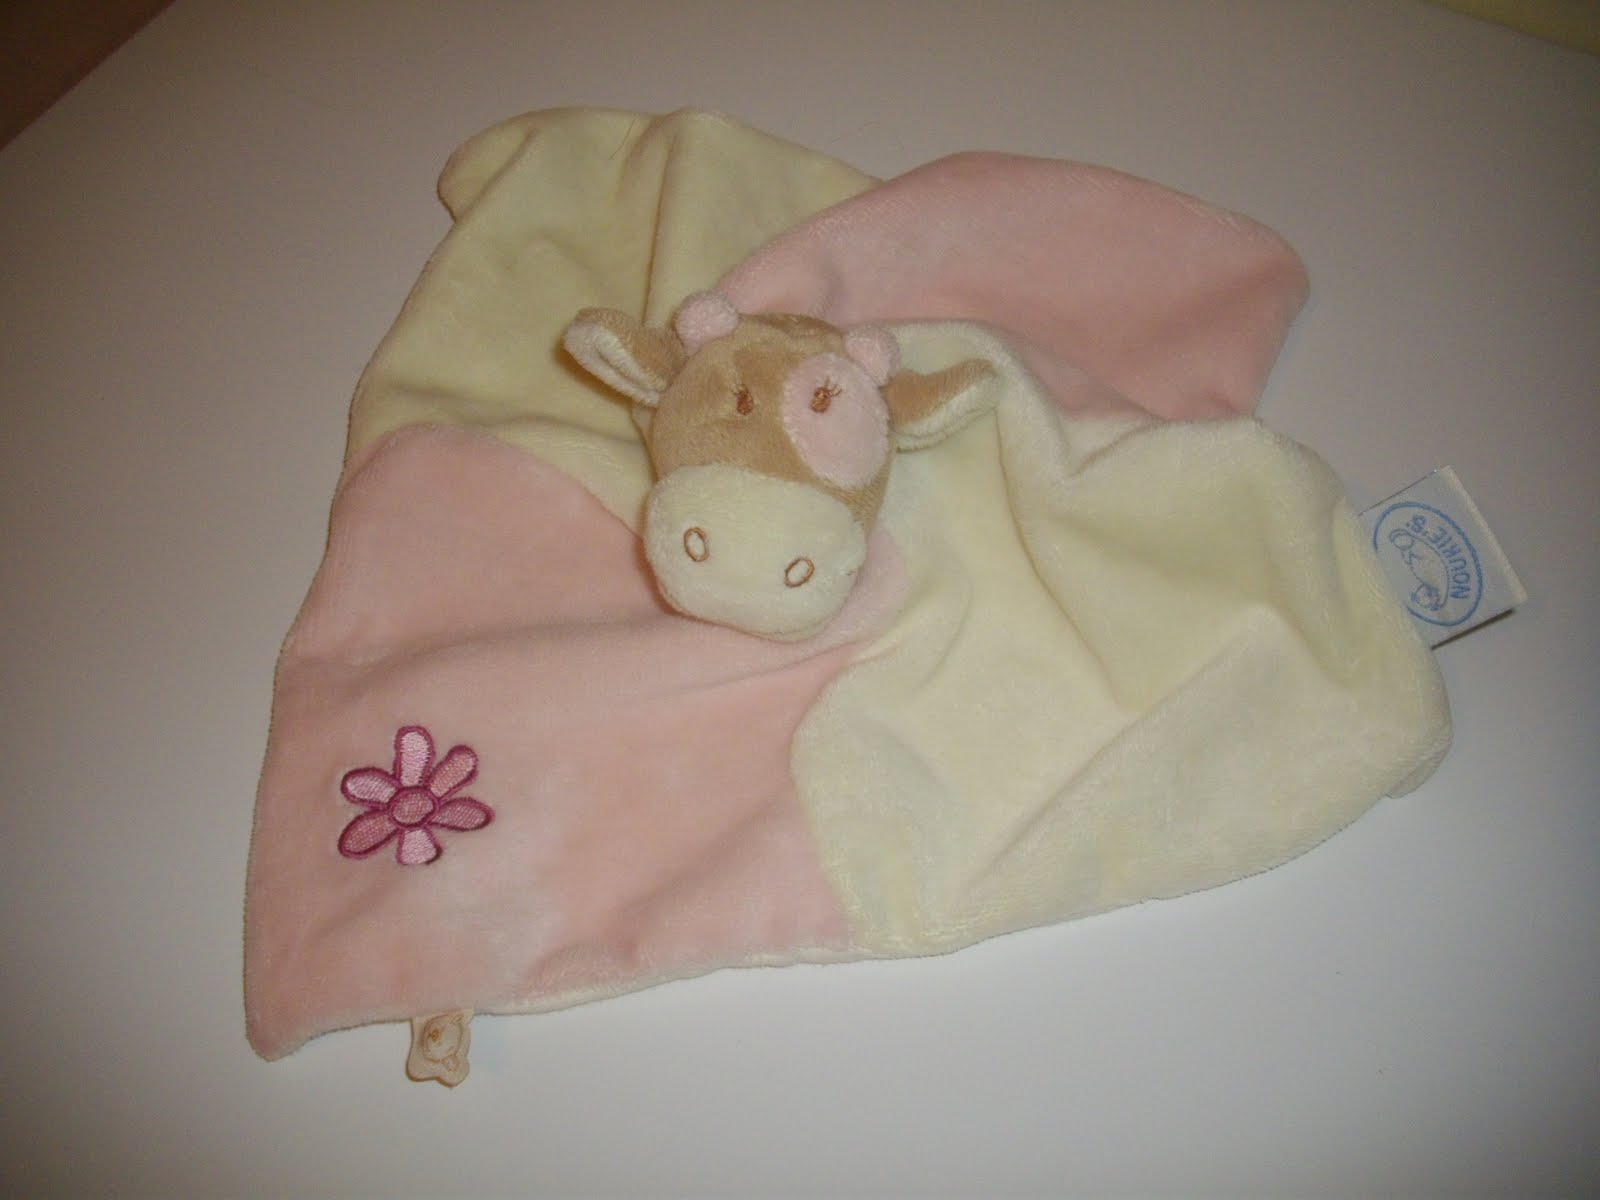 Household and Baby Items for Sale: Baby Items